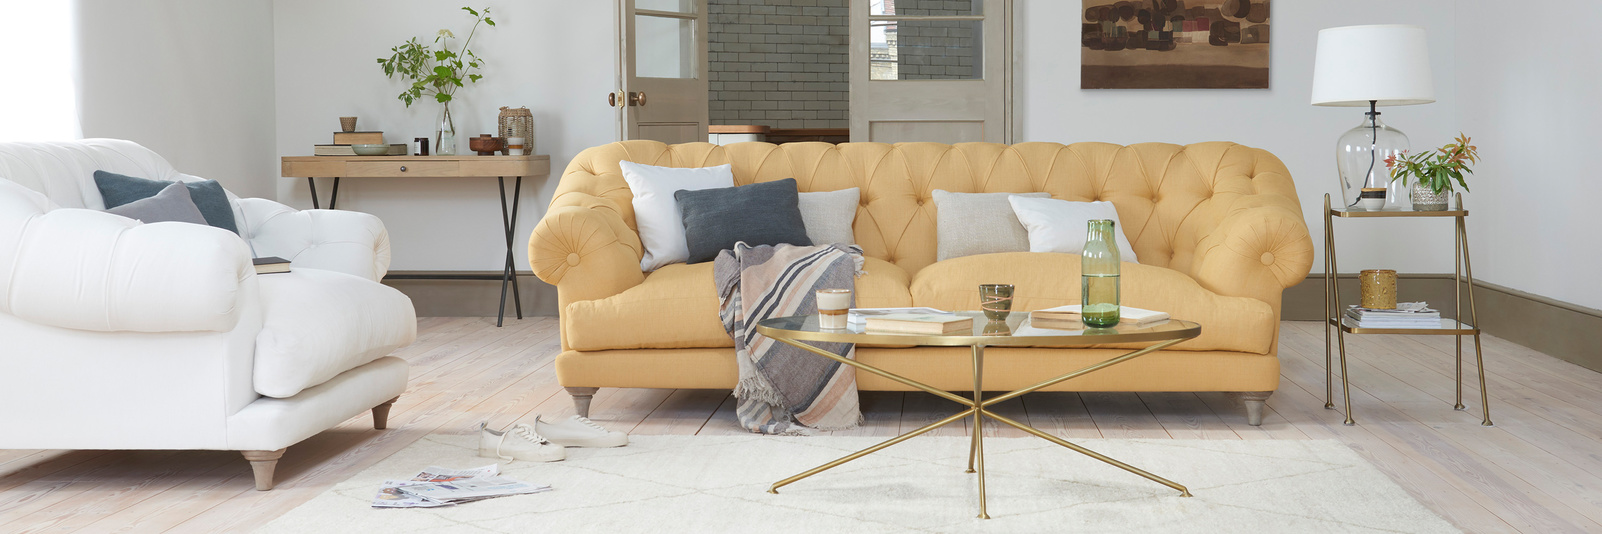 Bagsie Upholstered Button Back Sofa